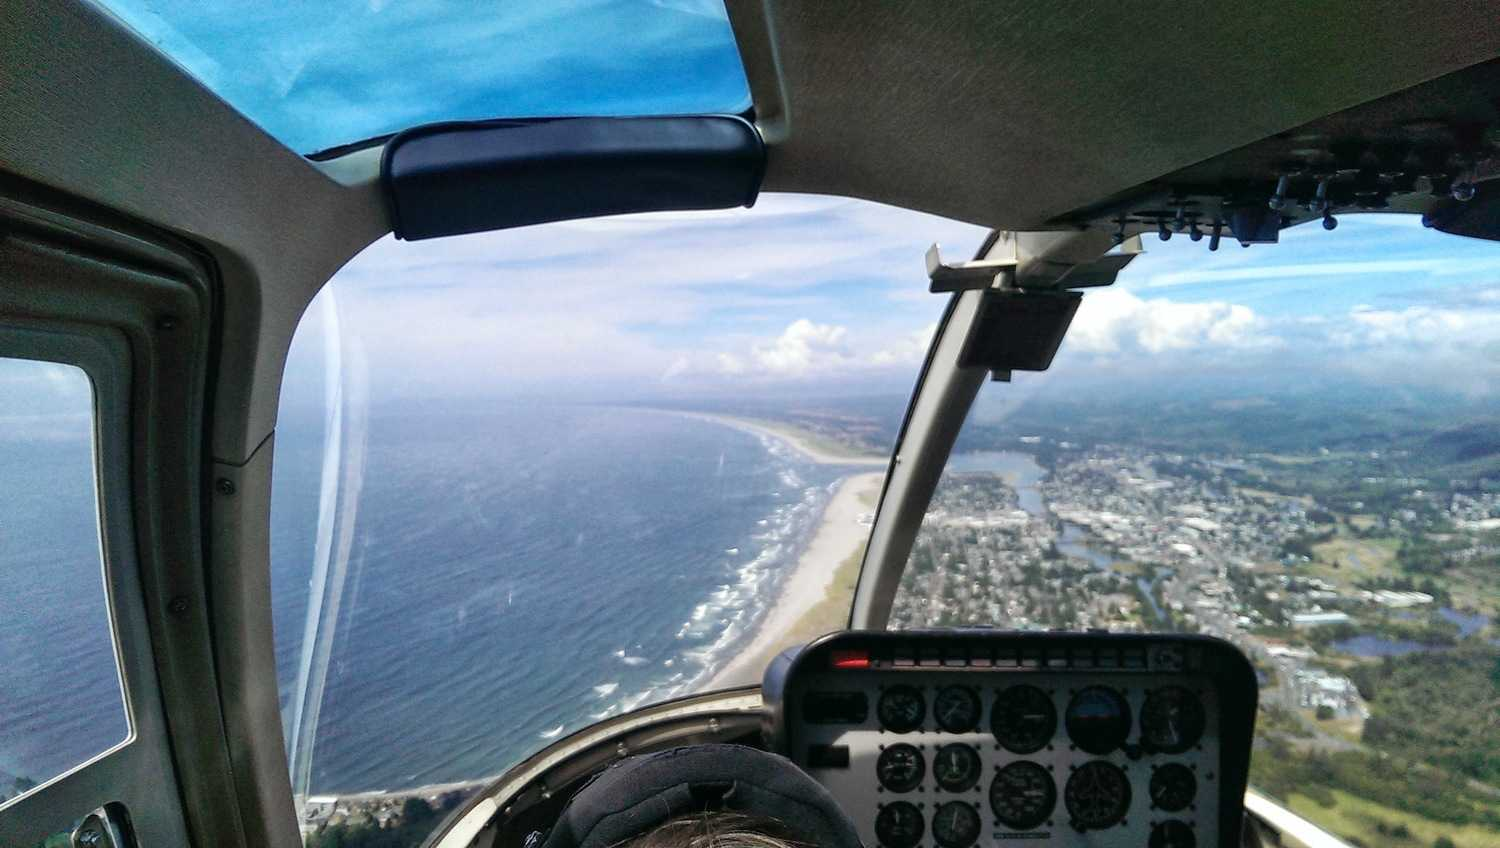 Saturday Helicopter Fun @ Seaside cover image